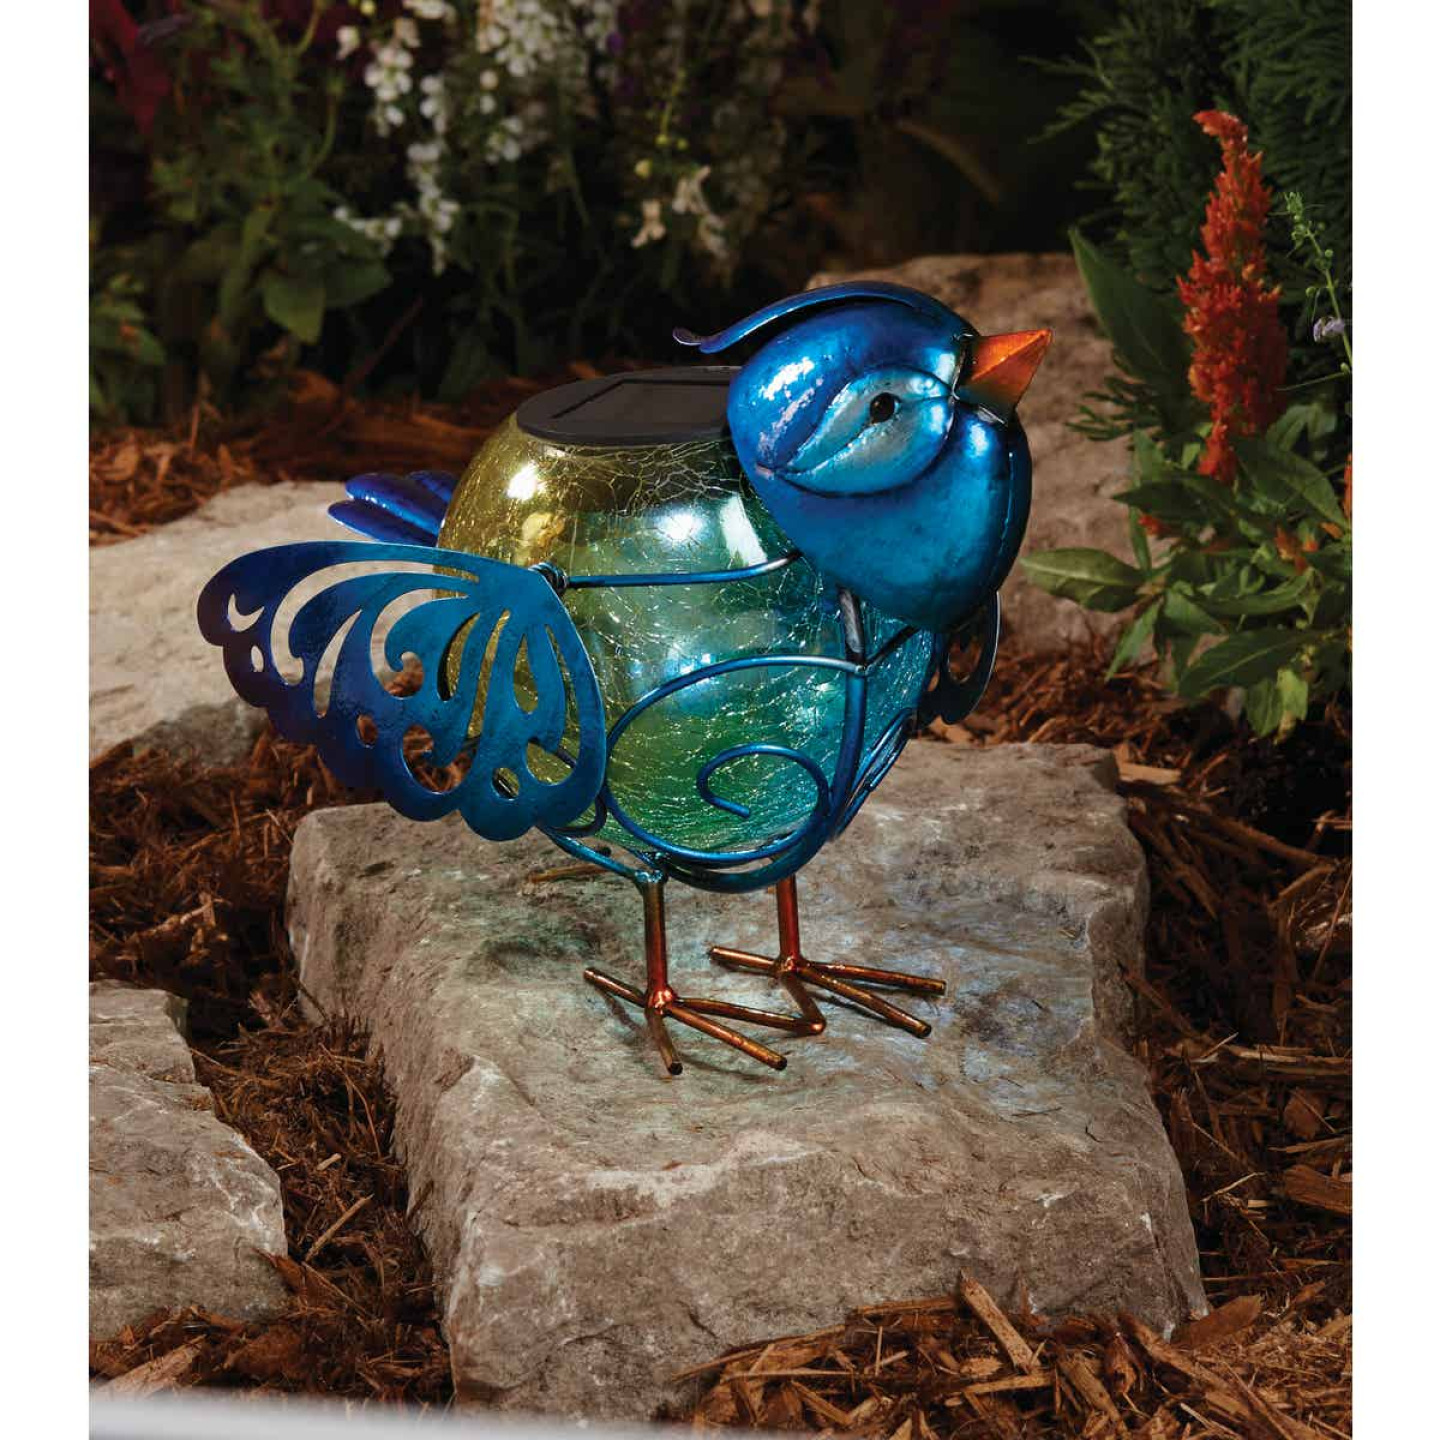 Outdoor Expressions 6 In. W.x 7.5 In. H. x 10 In. D. Bird Solar Light Image 2